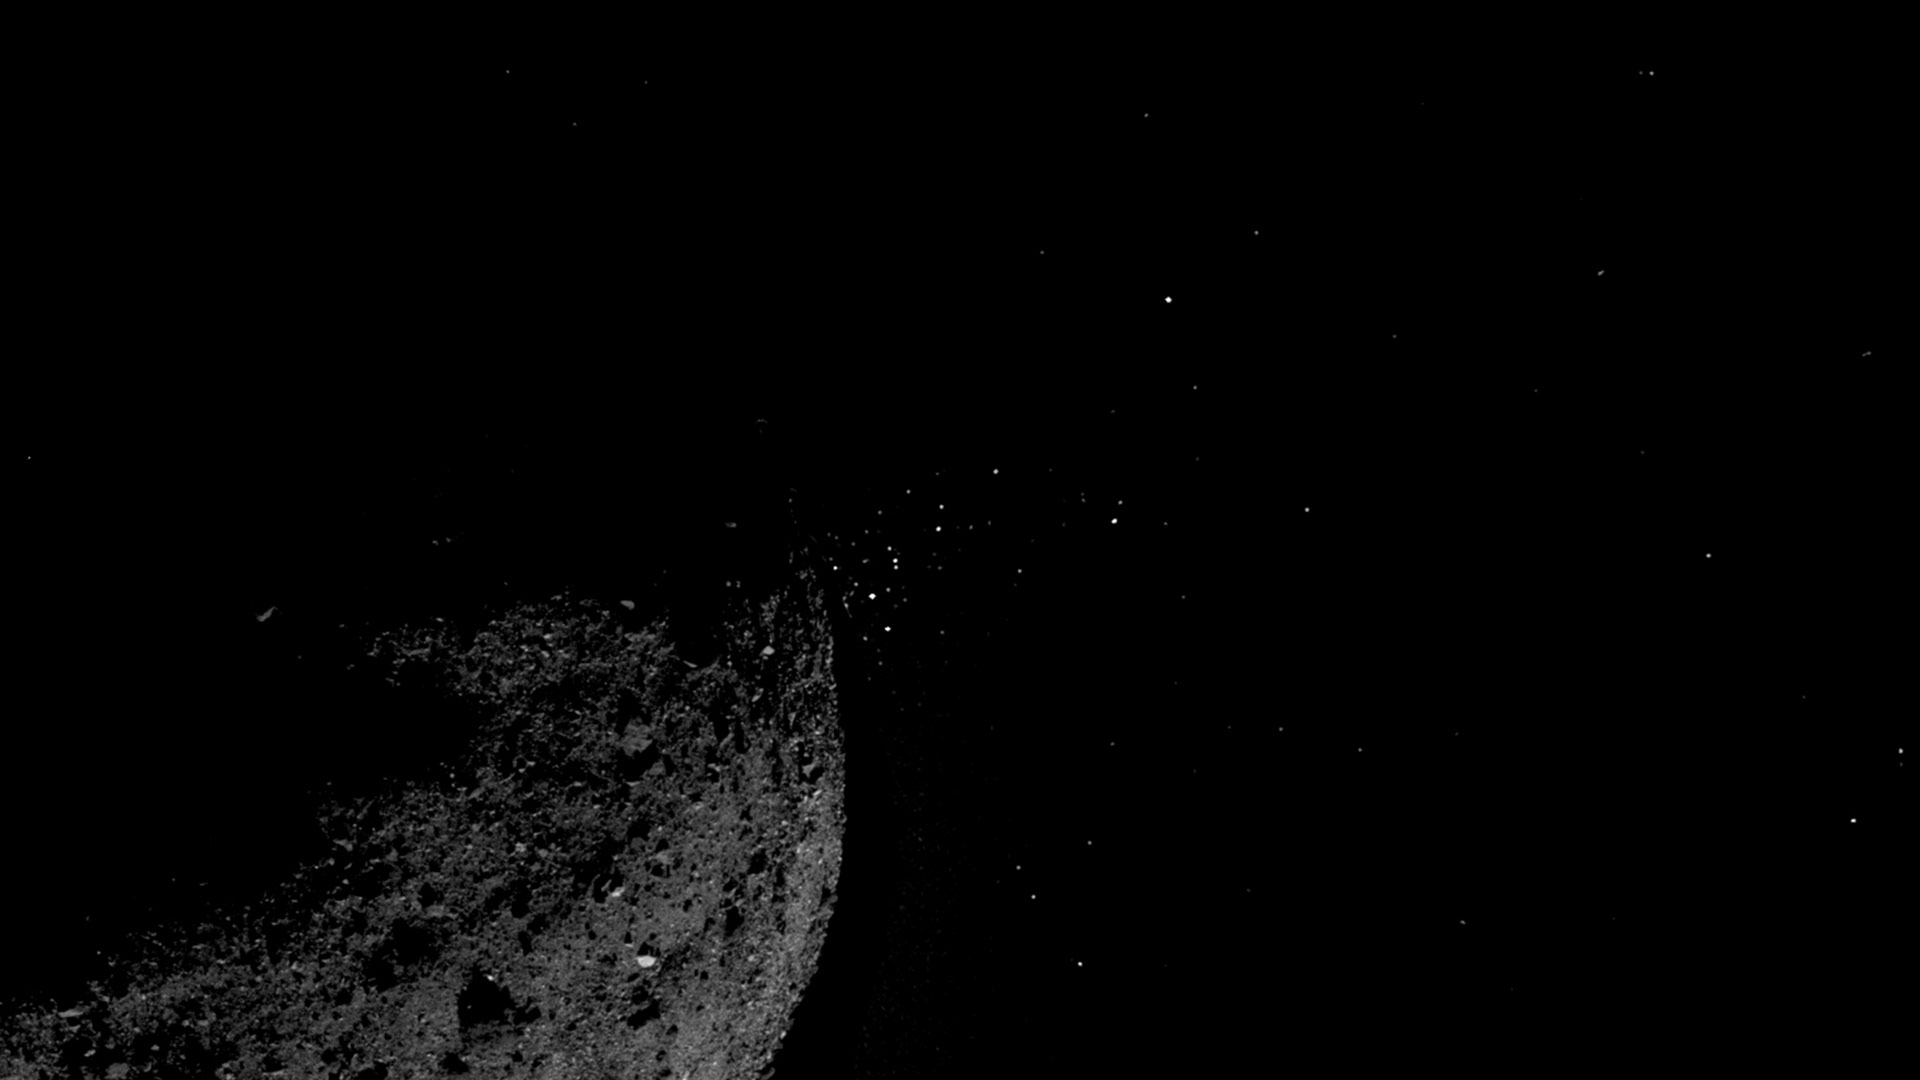 OSIRIS-REx Photographs Unique Particles Blasted From Bennu